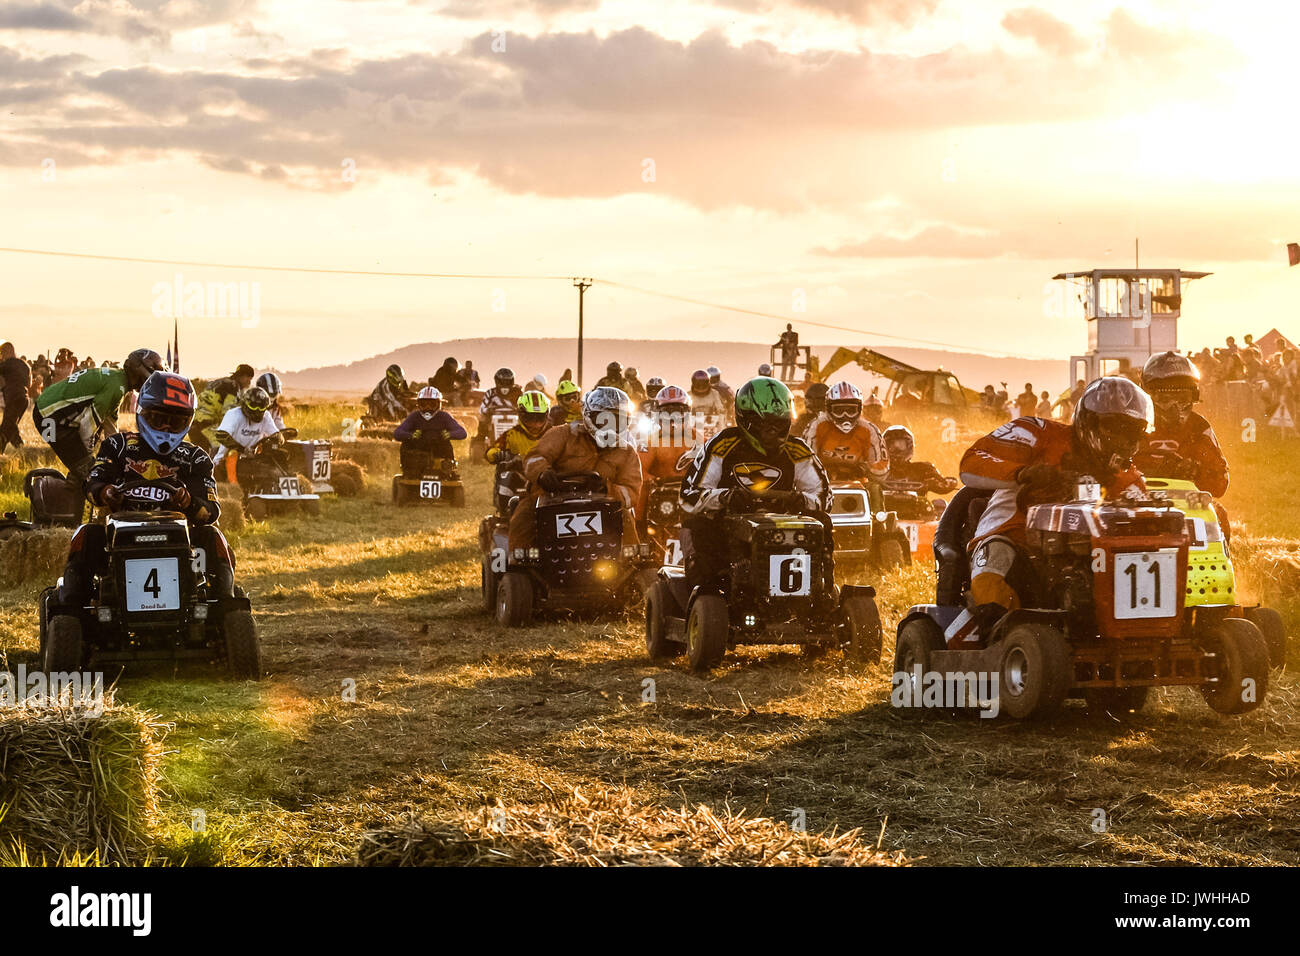 Billingshurst, West Sussex, UK. 12th August 2017. British Lawn Mower Racing Assoc 12 hour Race ( BLMRA ). The mowes - Stock Image